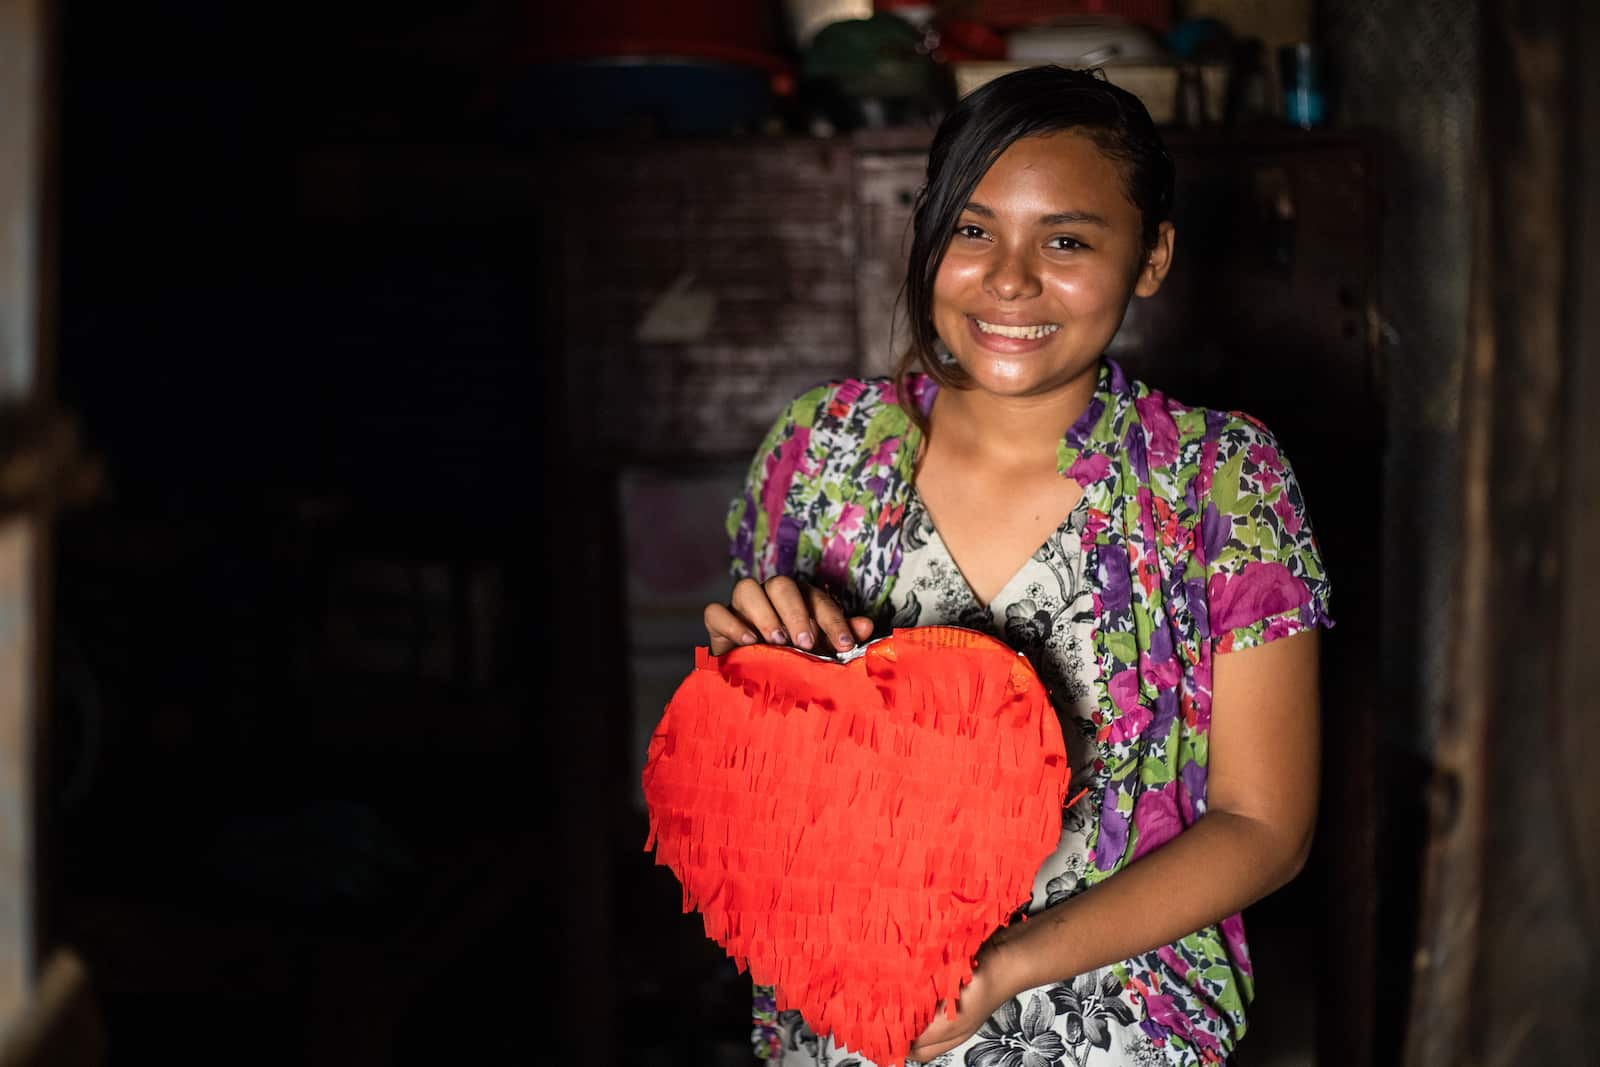 A girl in a floral shirt holds a red heart pinata.